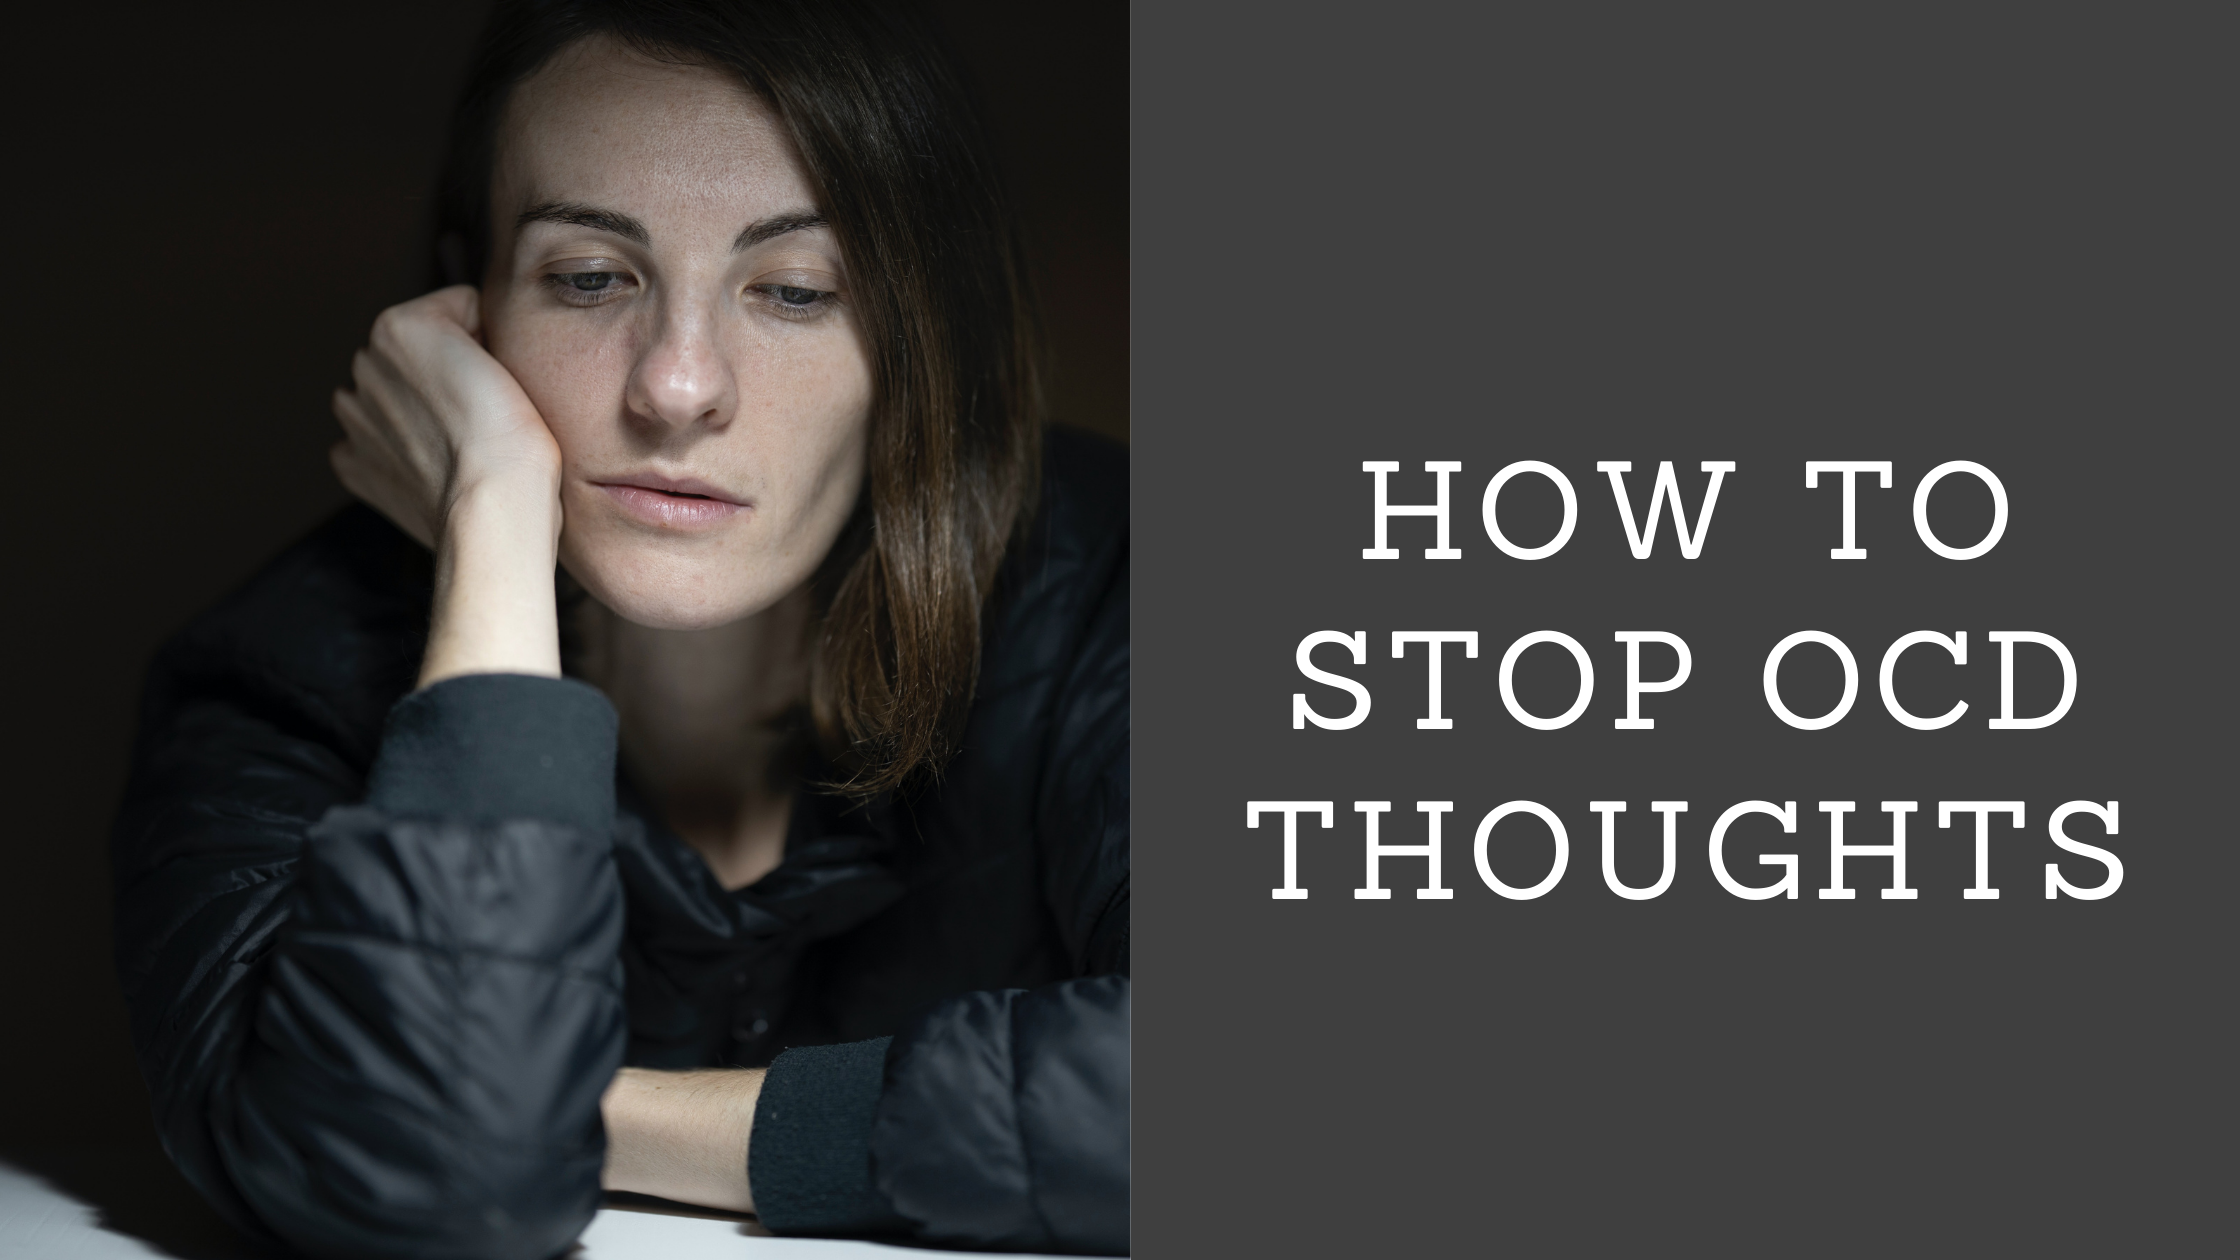 HOW TO STOP OCD THOUGHTS